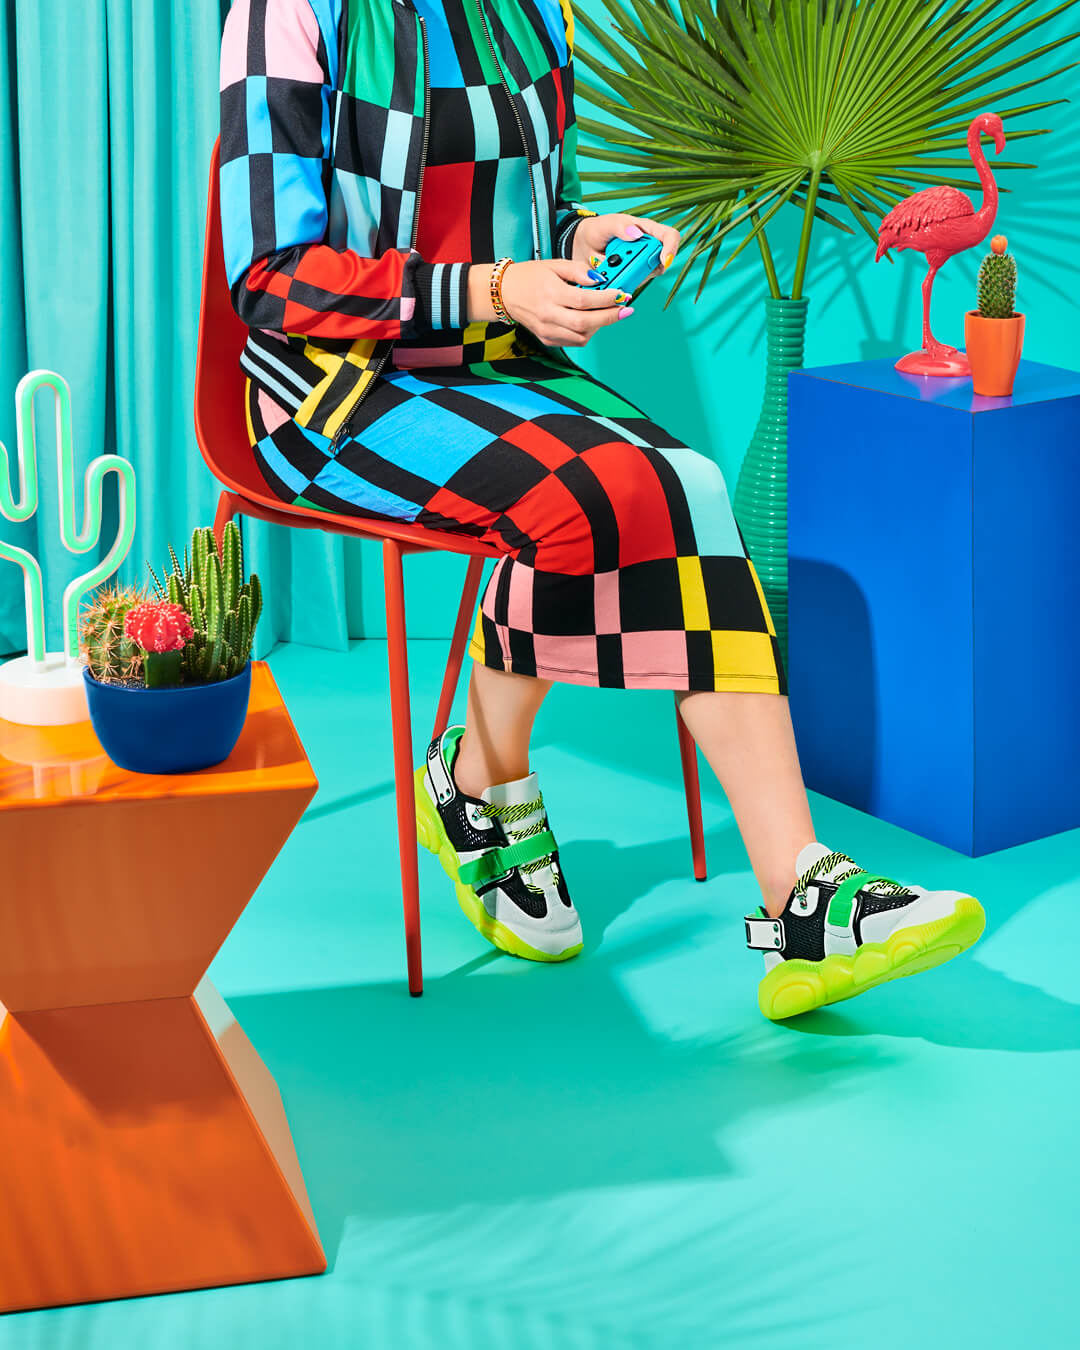 credits: photo - jenna gang, styling - chelsea volpe, nails - natsume chiharu, model - pauline sherrow  description: model playing with game wearing moschino, alice & oliva, kate spade, and amazon.